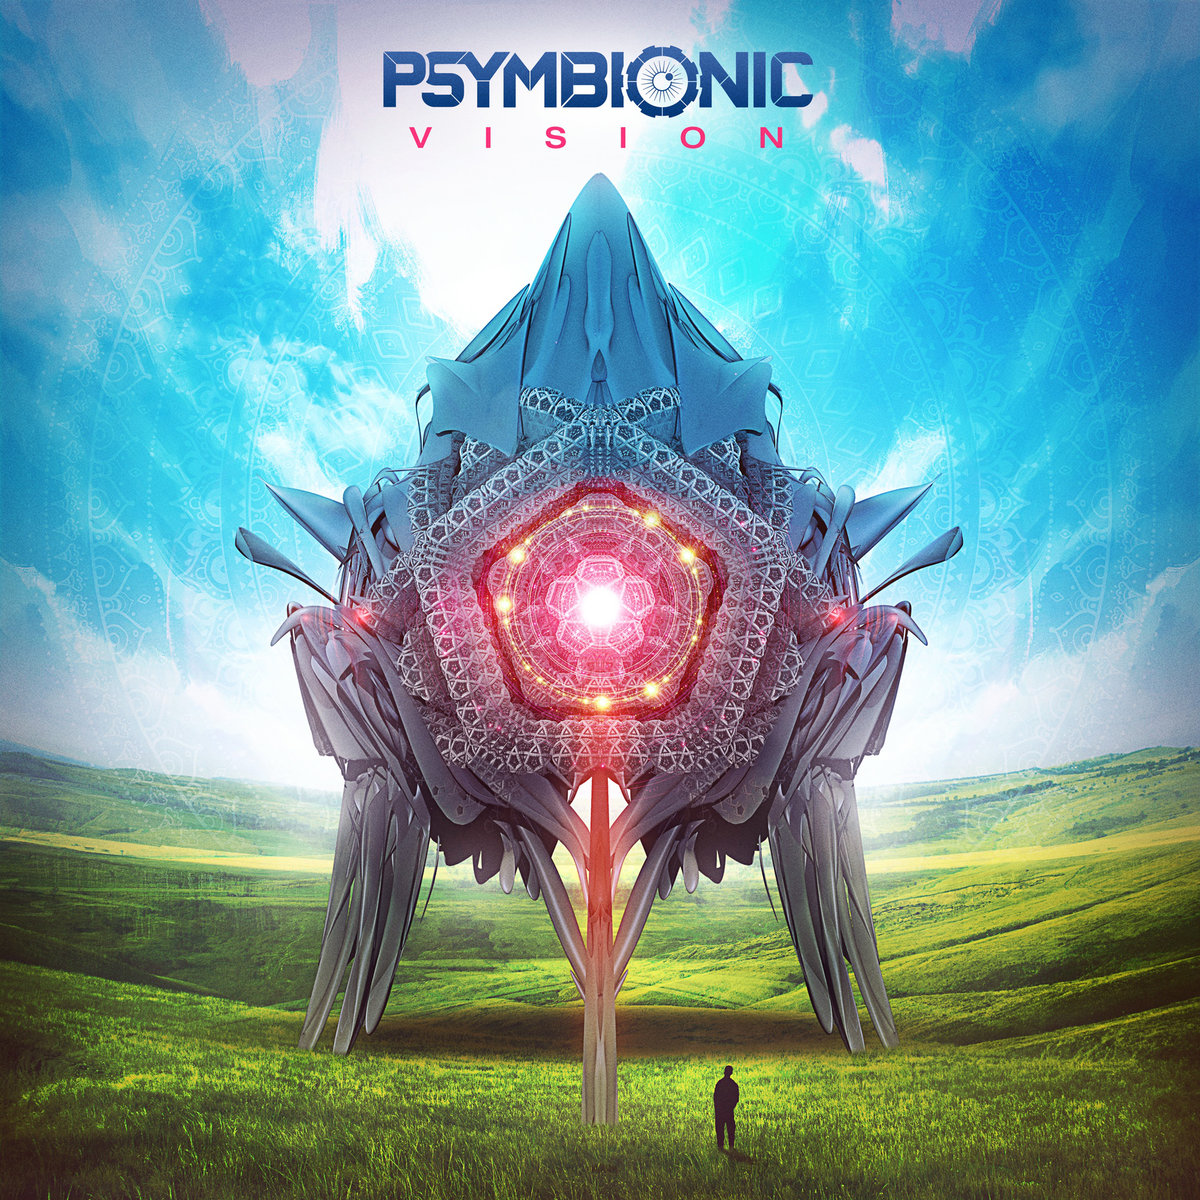 Psymbionic - Retroactive @ 'Vision' album (electronic, dubstep)